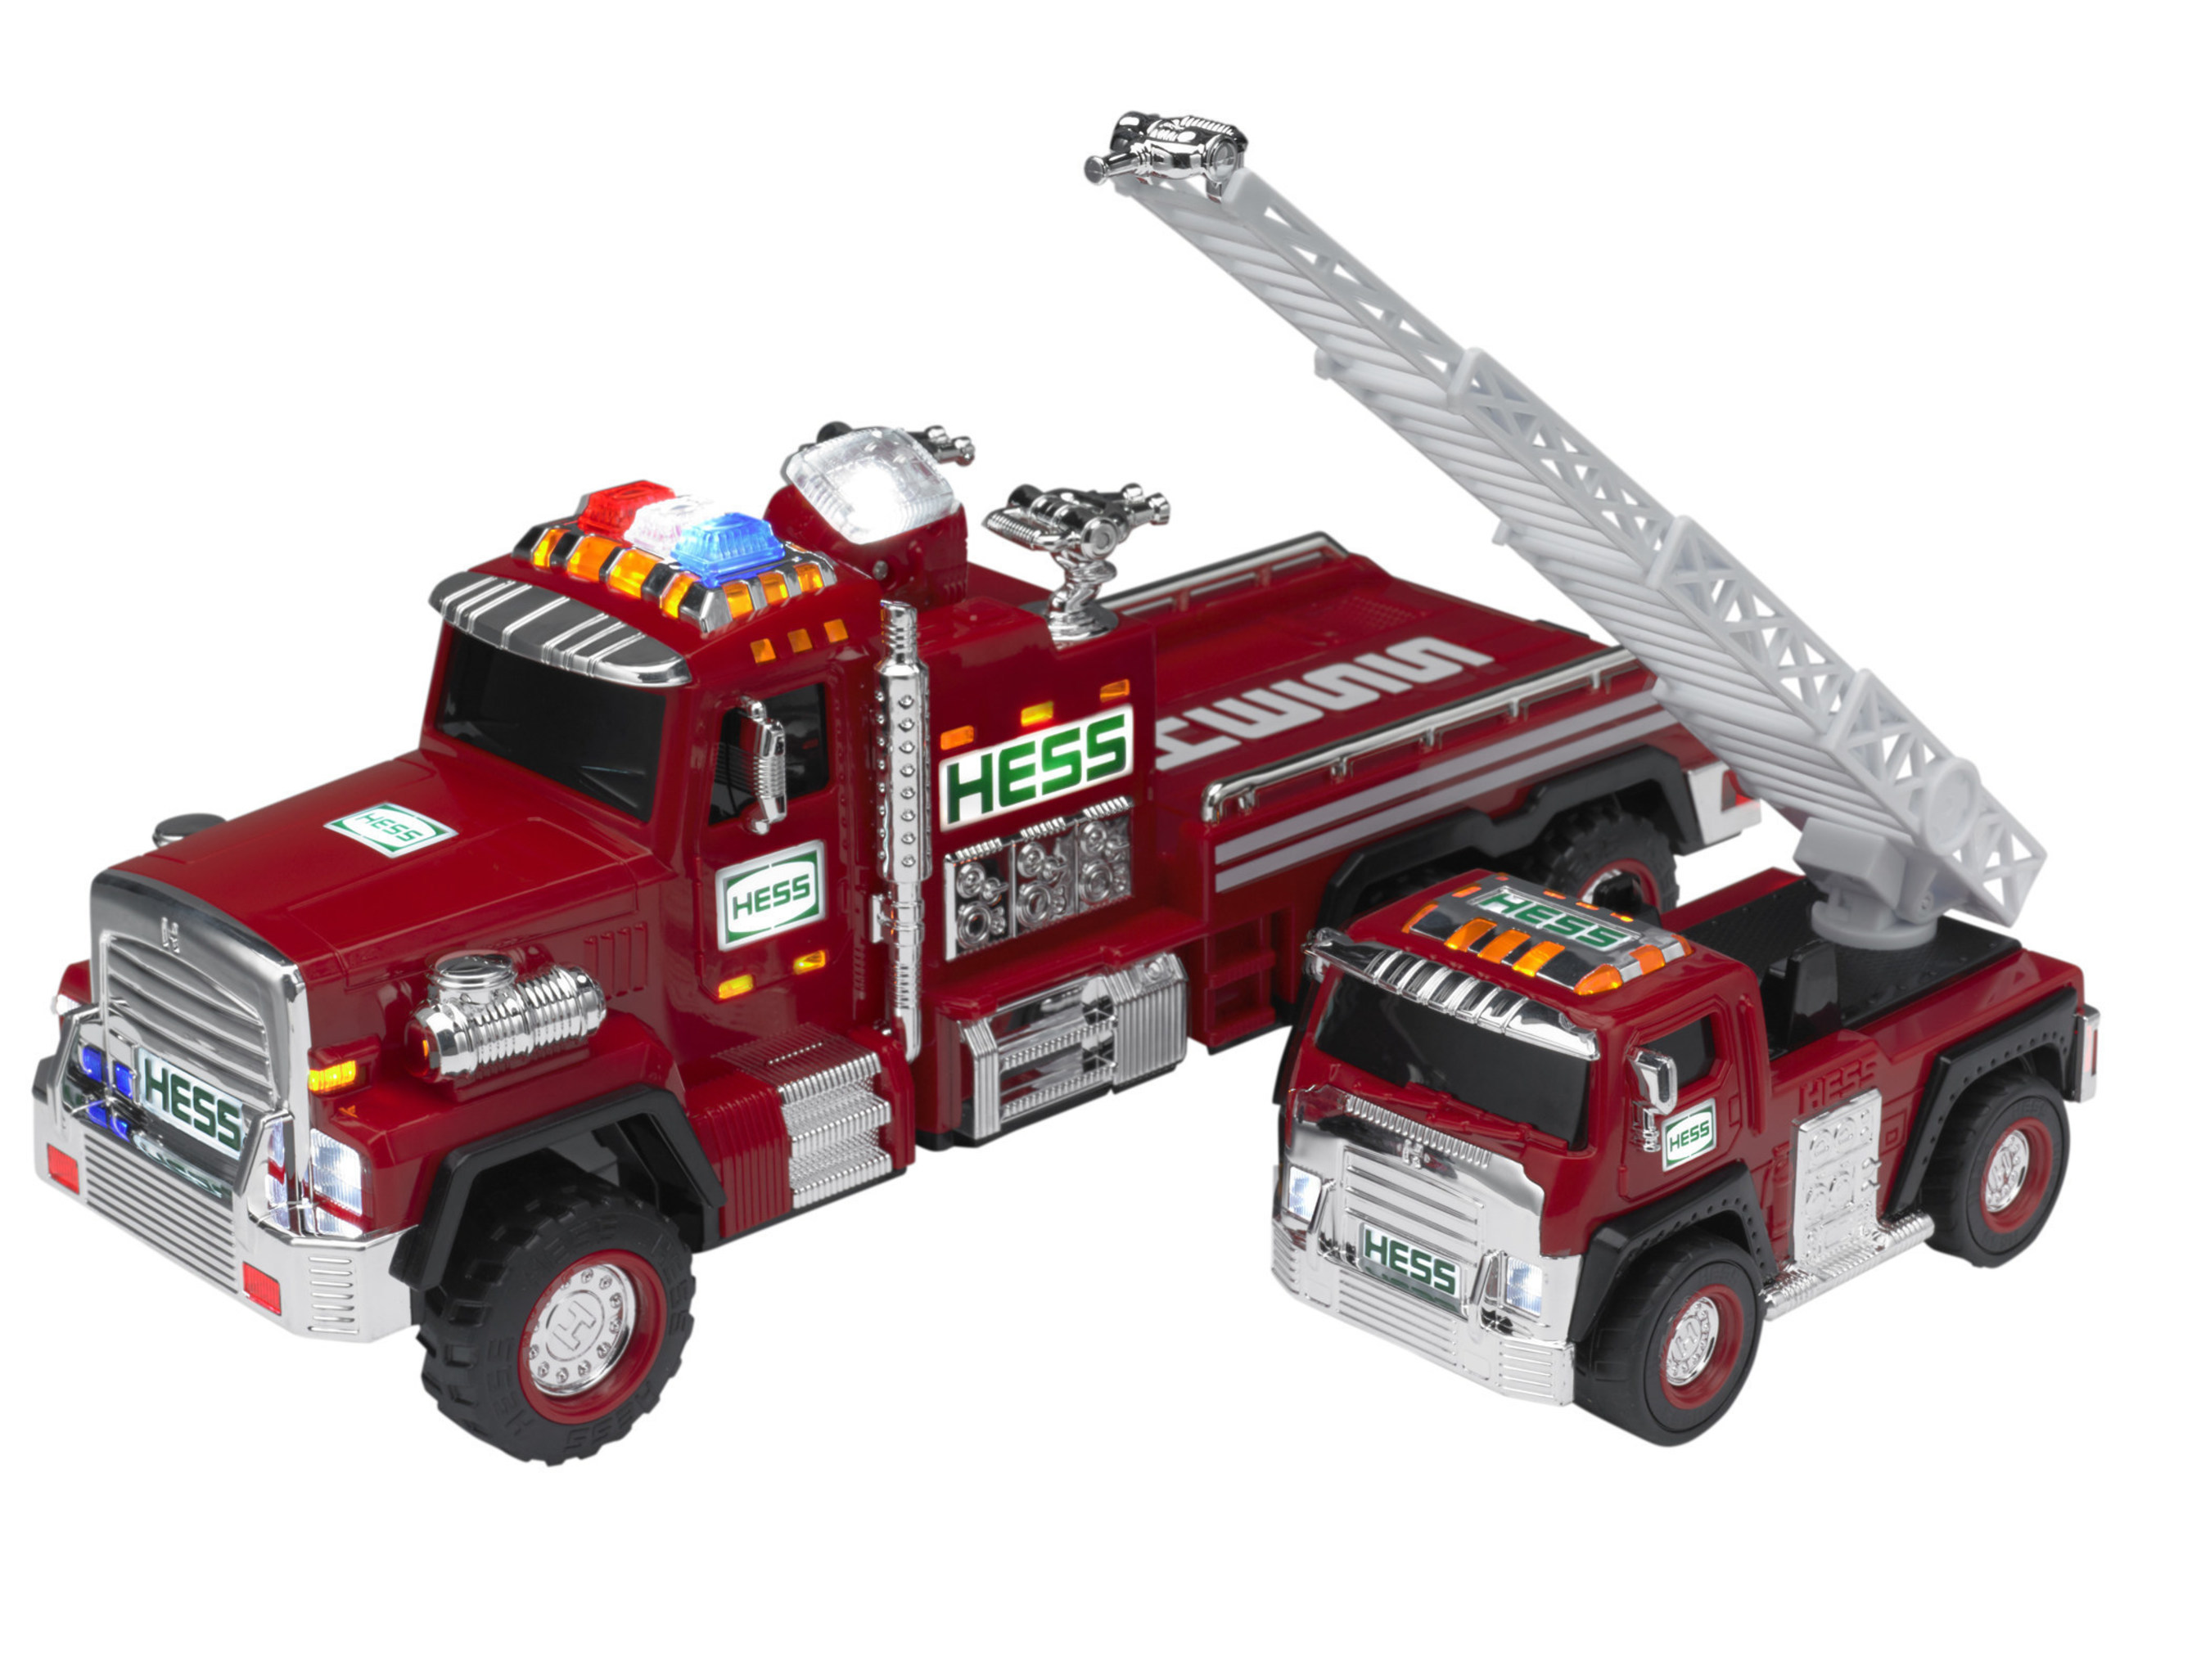 2015 Hess Toy Truck Now Available Online